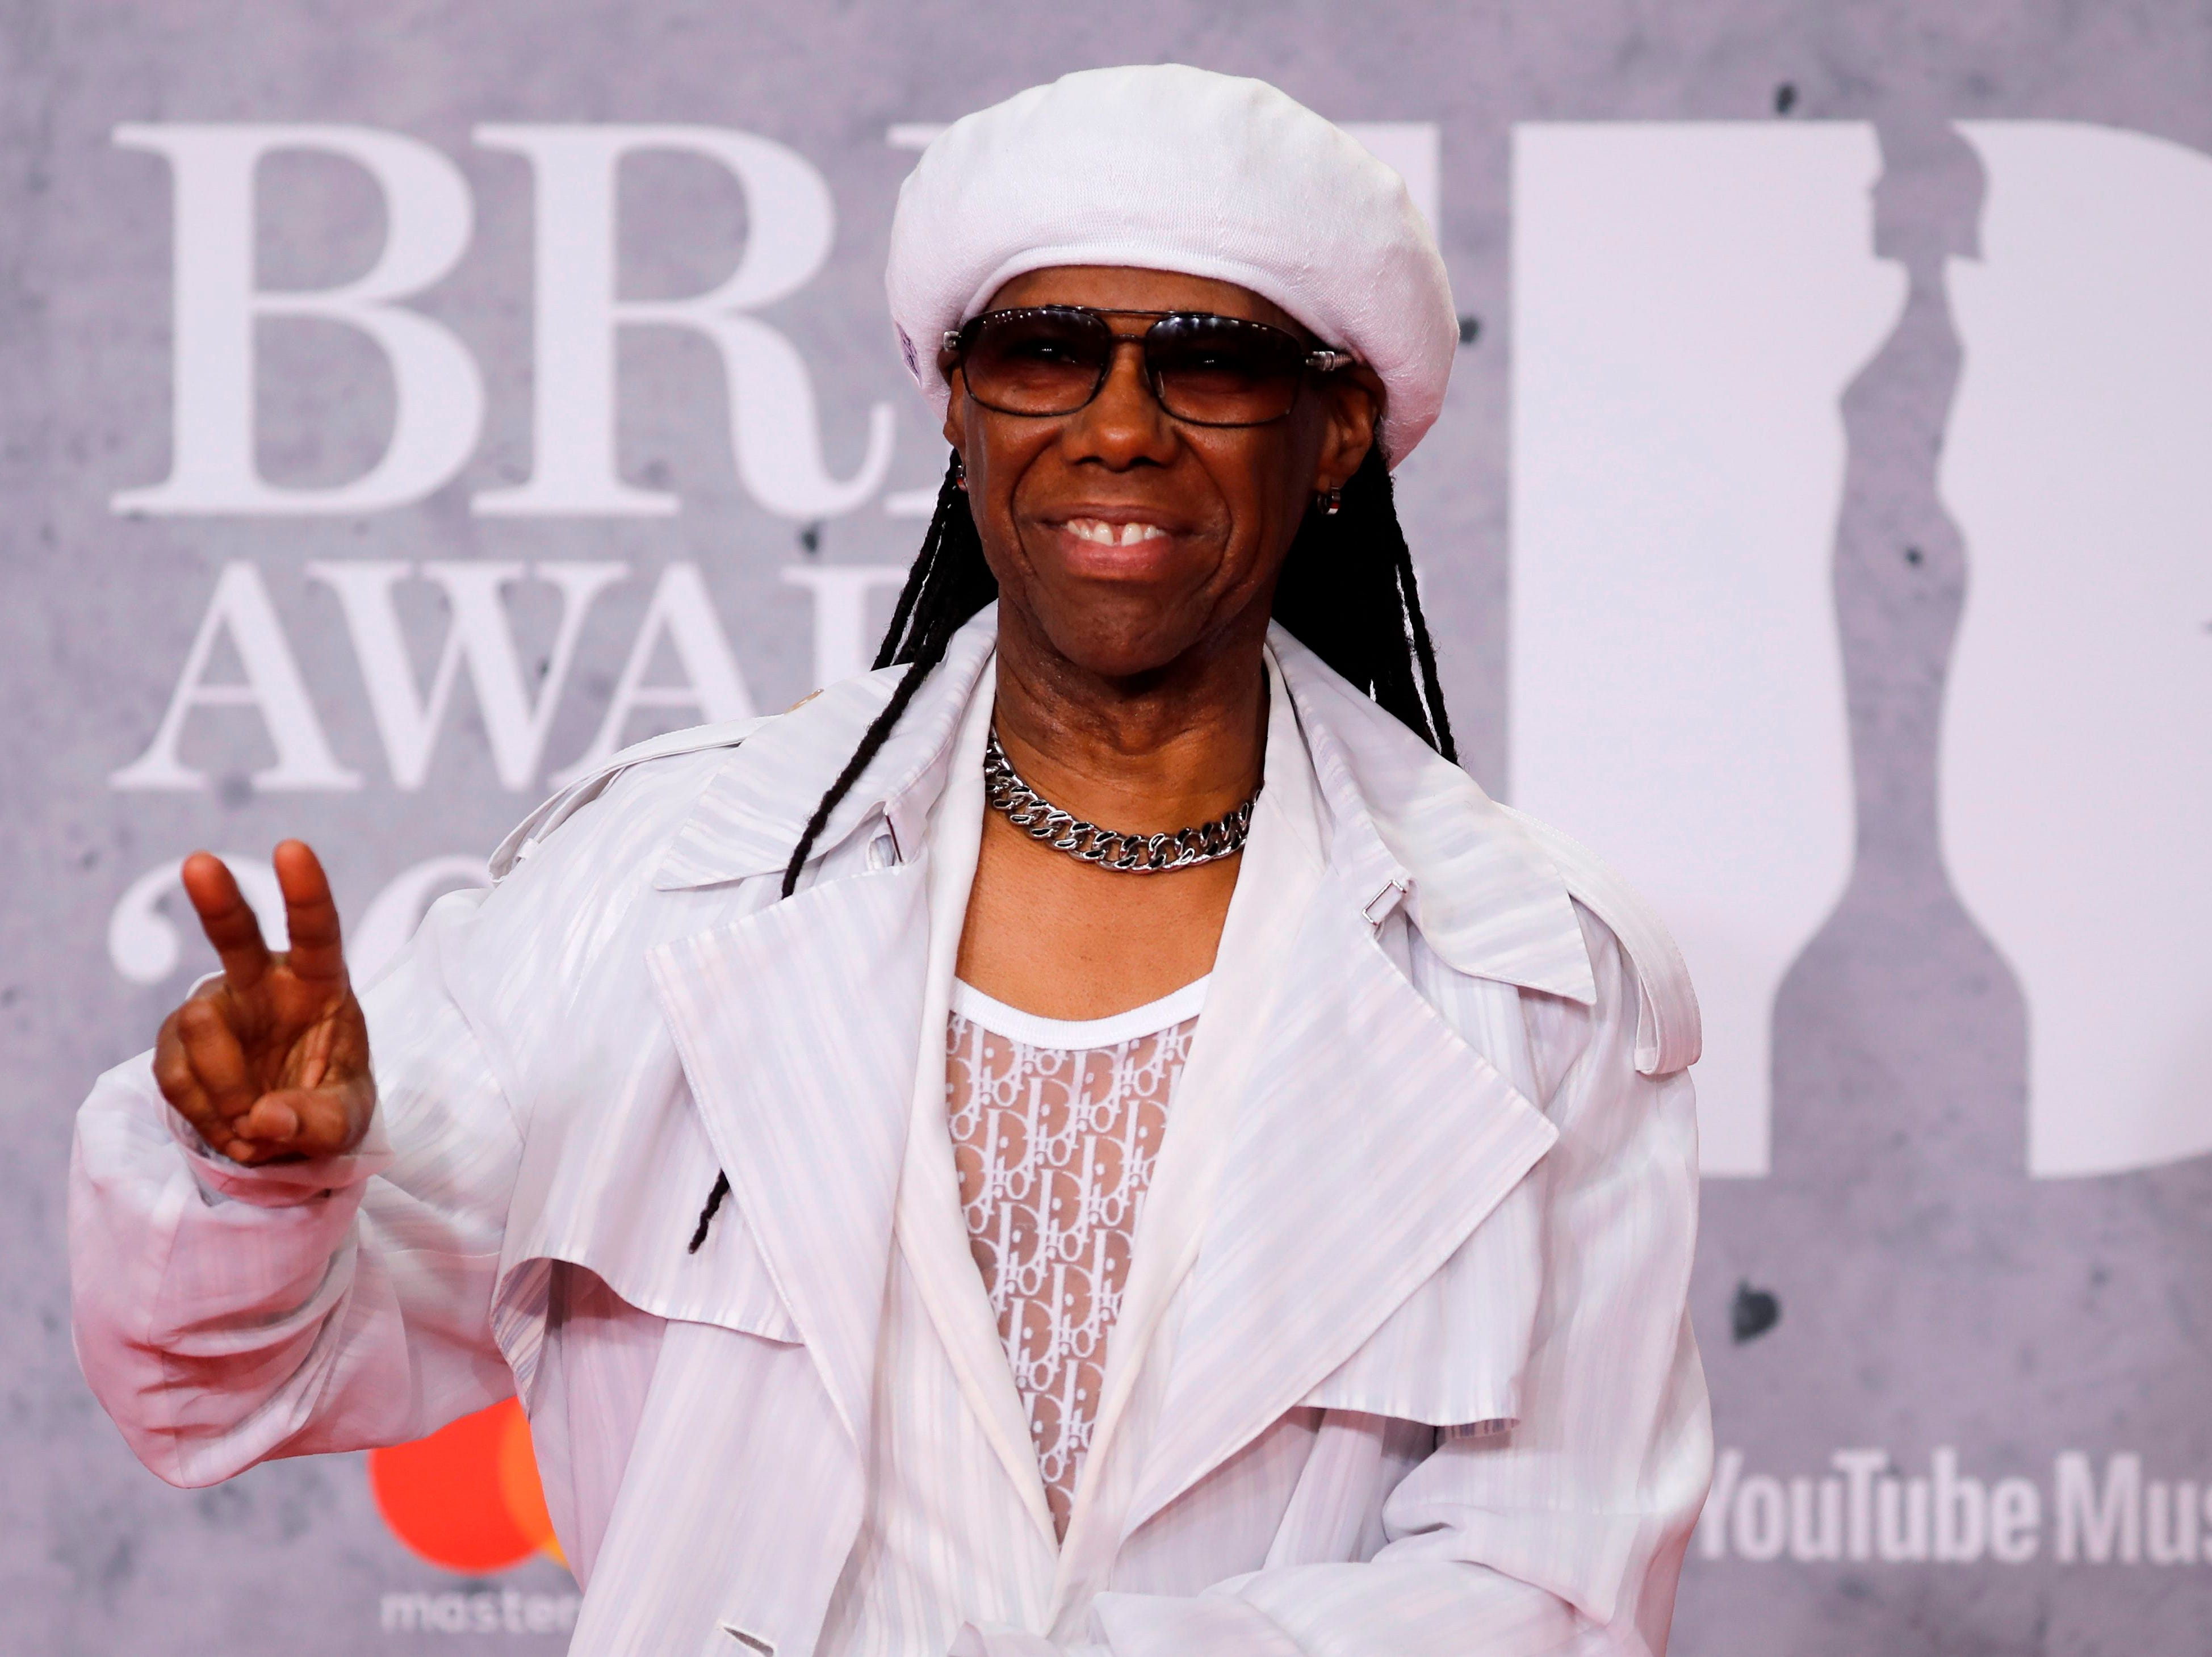 US musician Nile Rogers poses on the red carpet on arrival for the BRIT Awards 2019 in London on February 20, 2019. (Photo by Tolga AKMEN / AFP) / RESTRICTED TO EDITORIAL USE  NO POSTERS  NO MERCHANDISE NO USE IN PUBLICATIONS DEVOTED TO ARTISTSTOLGA AKMEN/AFP/Getty Images ORIG FILE ID: AFP_1DO2DL